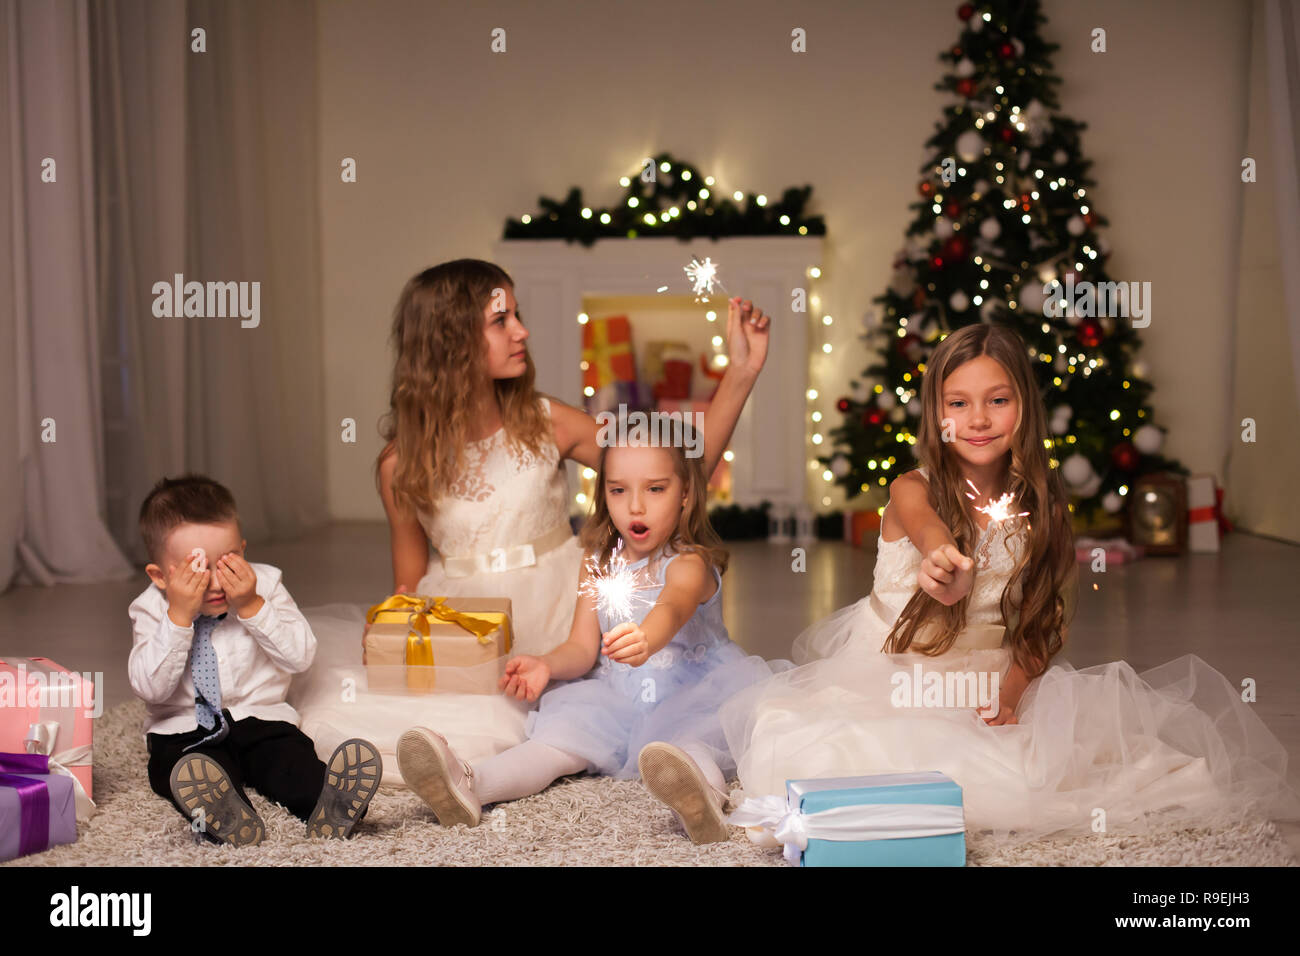 Kids open Christmas presents new year holiday lights sparklers Stock Photo